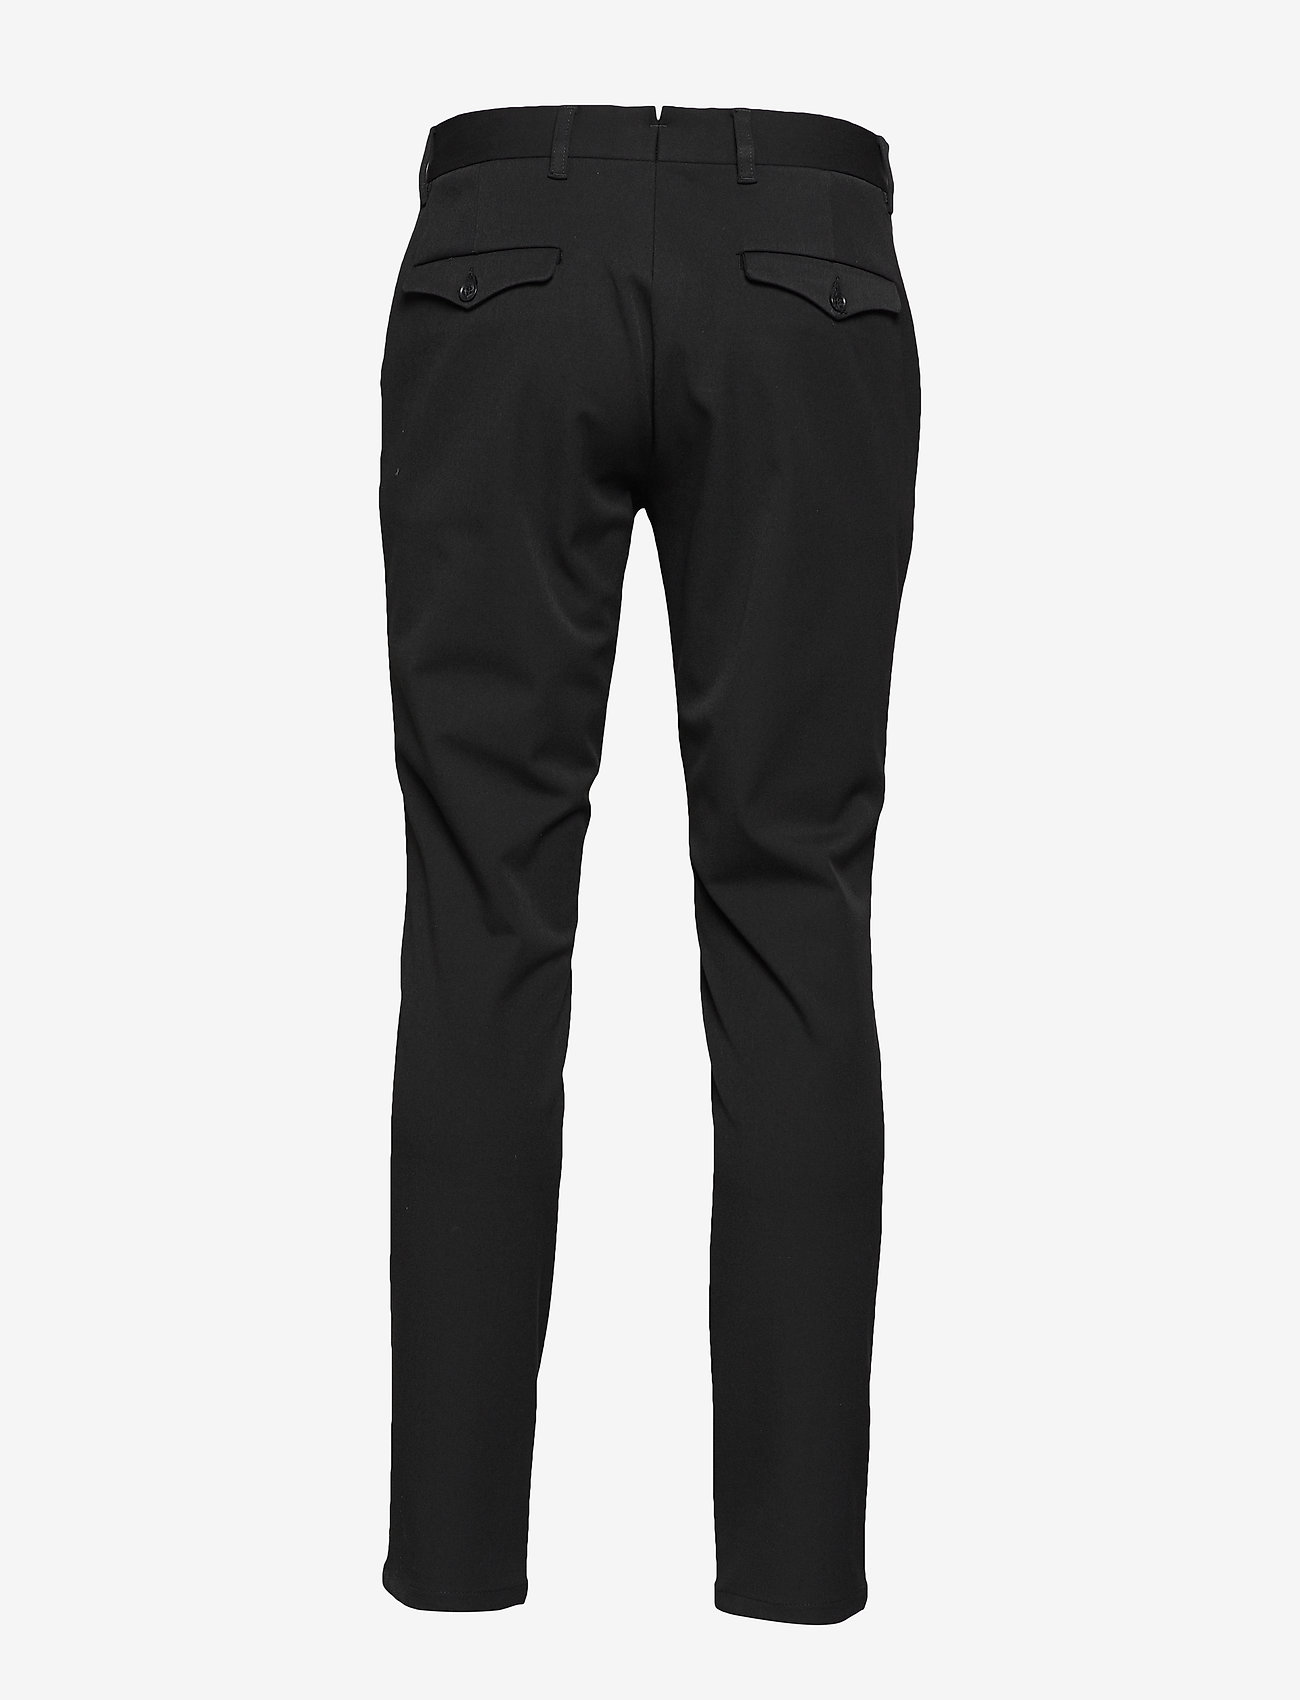 Selected Homme - SLHSLIM-CARLO FLEX PANTS B NOOS - suitbukser - black - 1